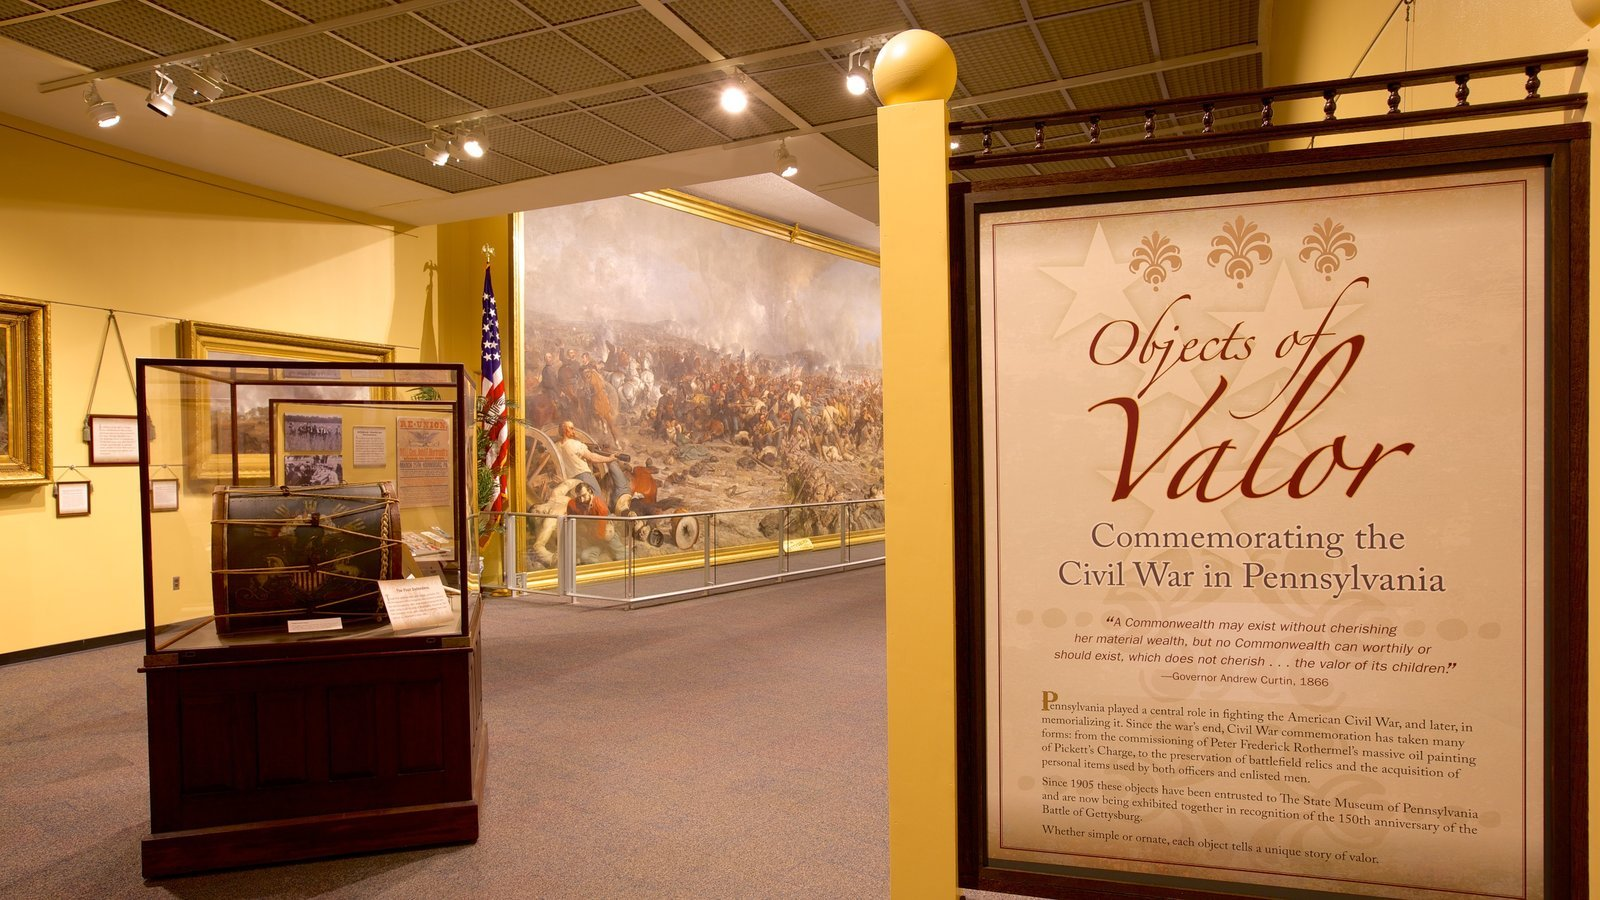 The entrance to the museum's permanent Civil War exhibit.